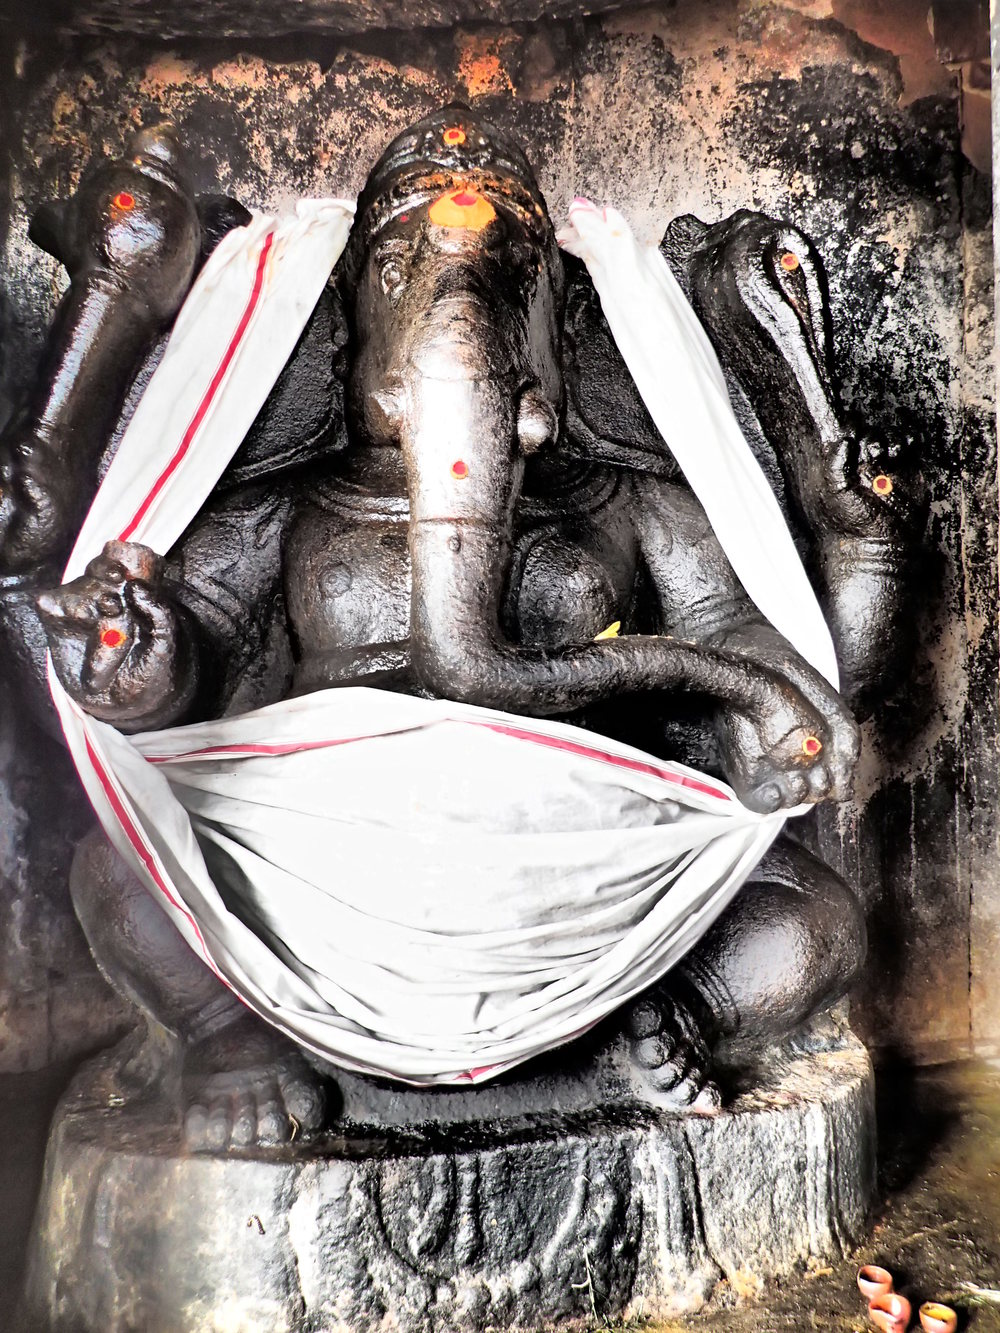 Ganesh, a Hindi god